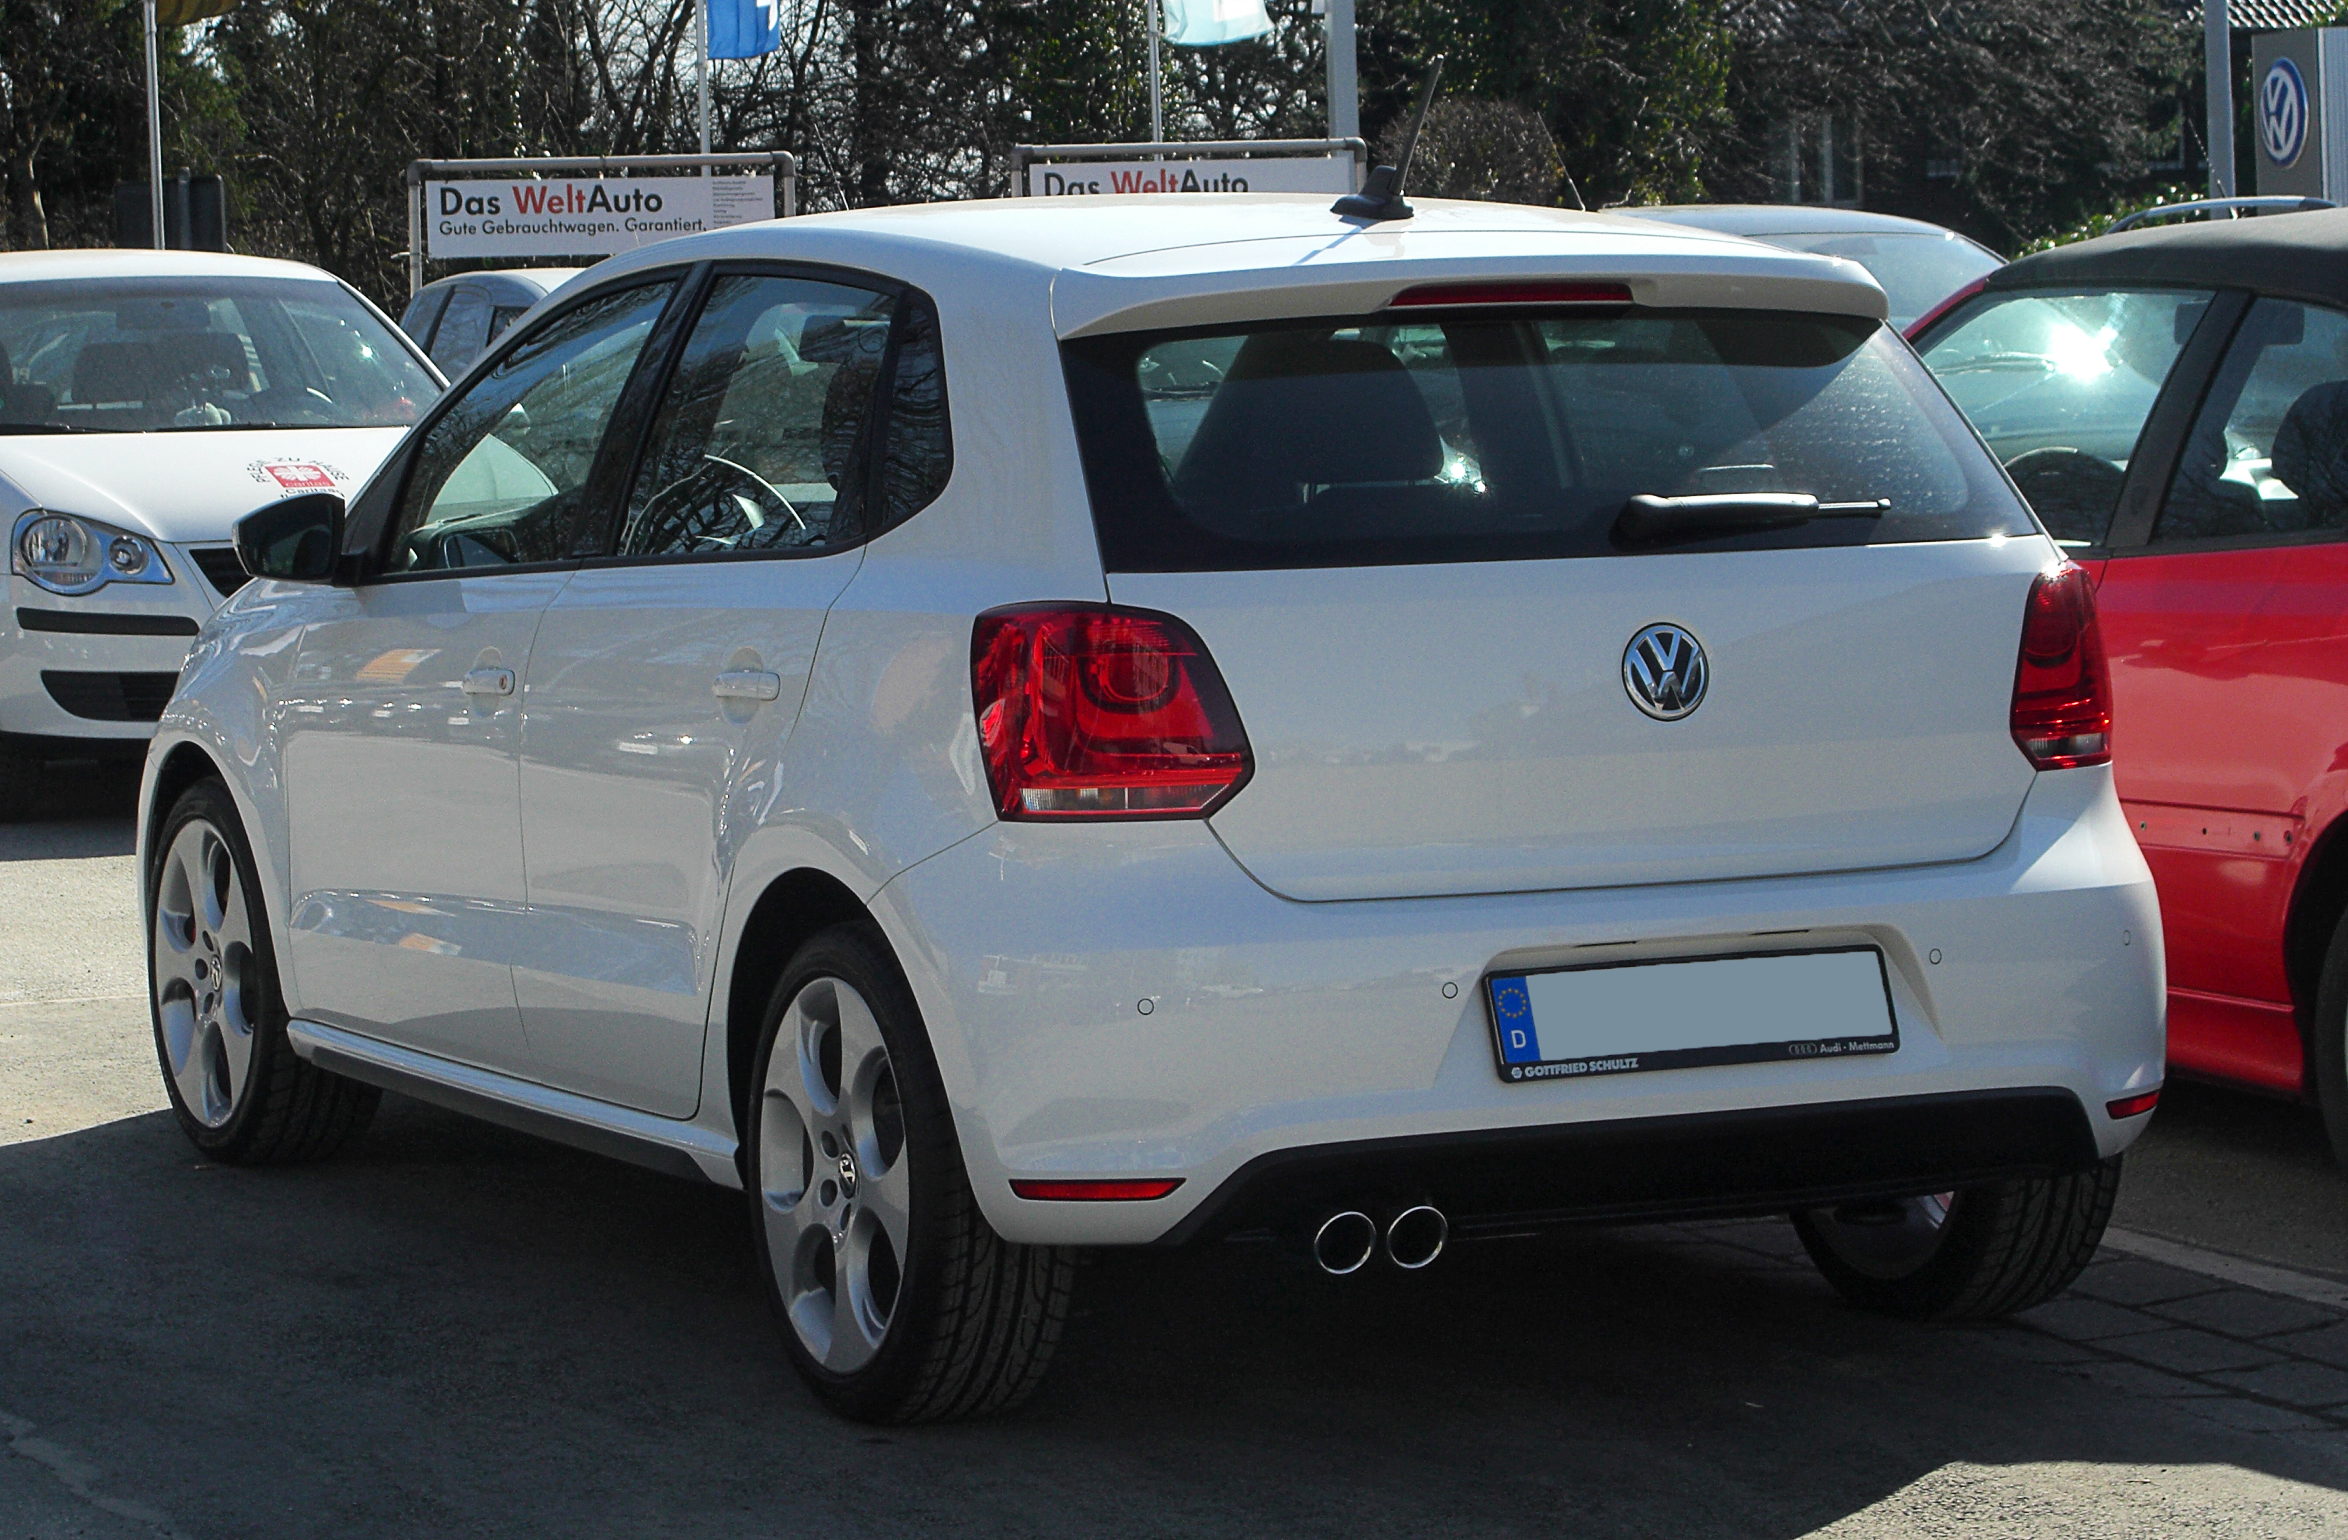 VW Polo GTI image #15